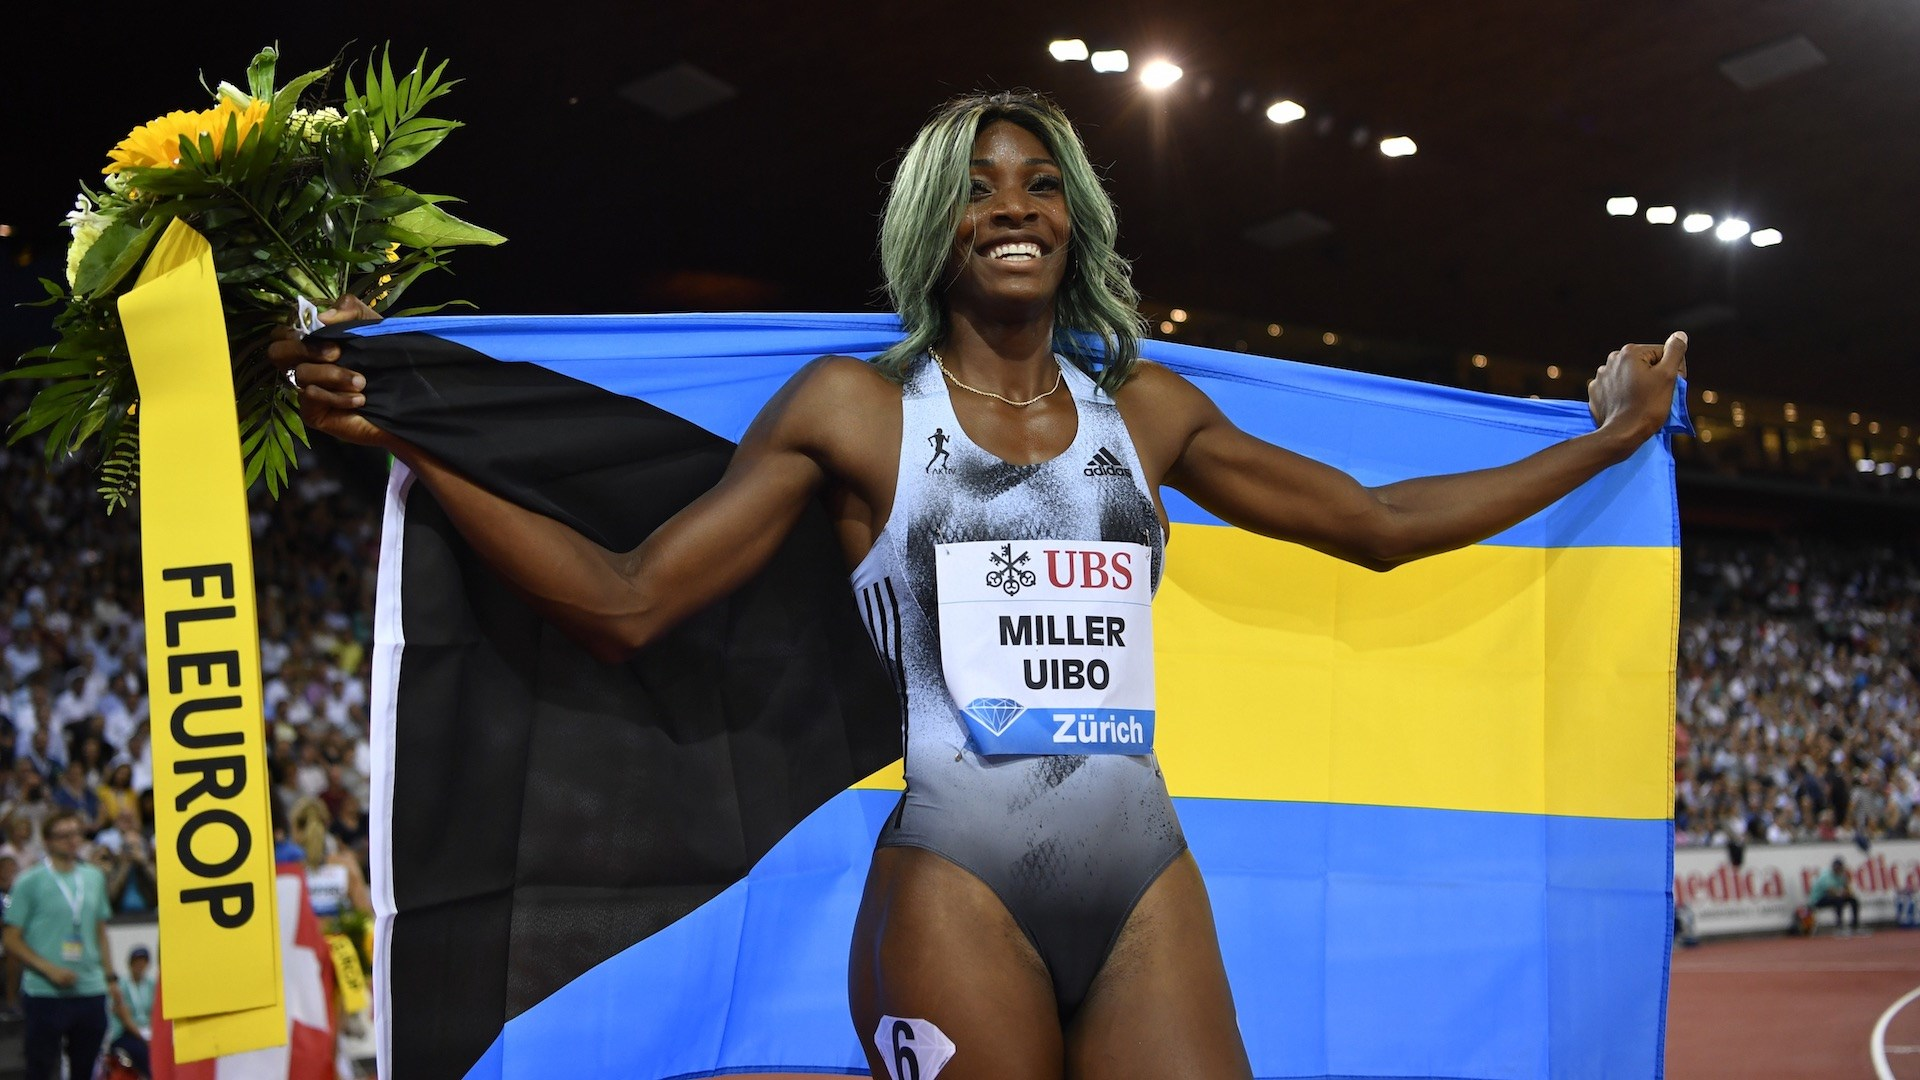 Miller-Uibo Sizzles to 21.74s PB To Win Diamond League 200m Crown